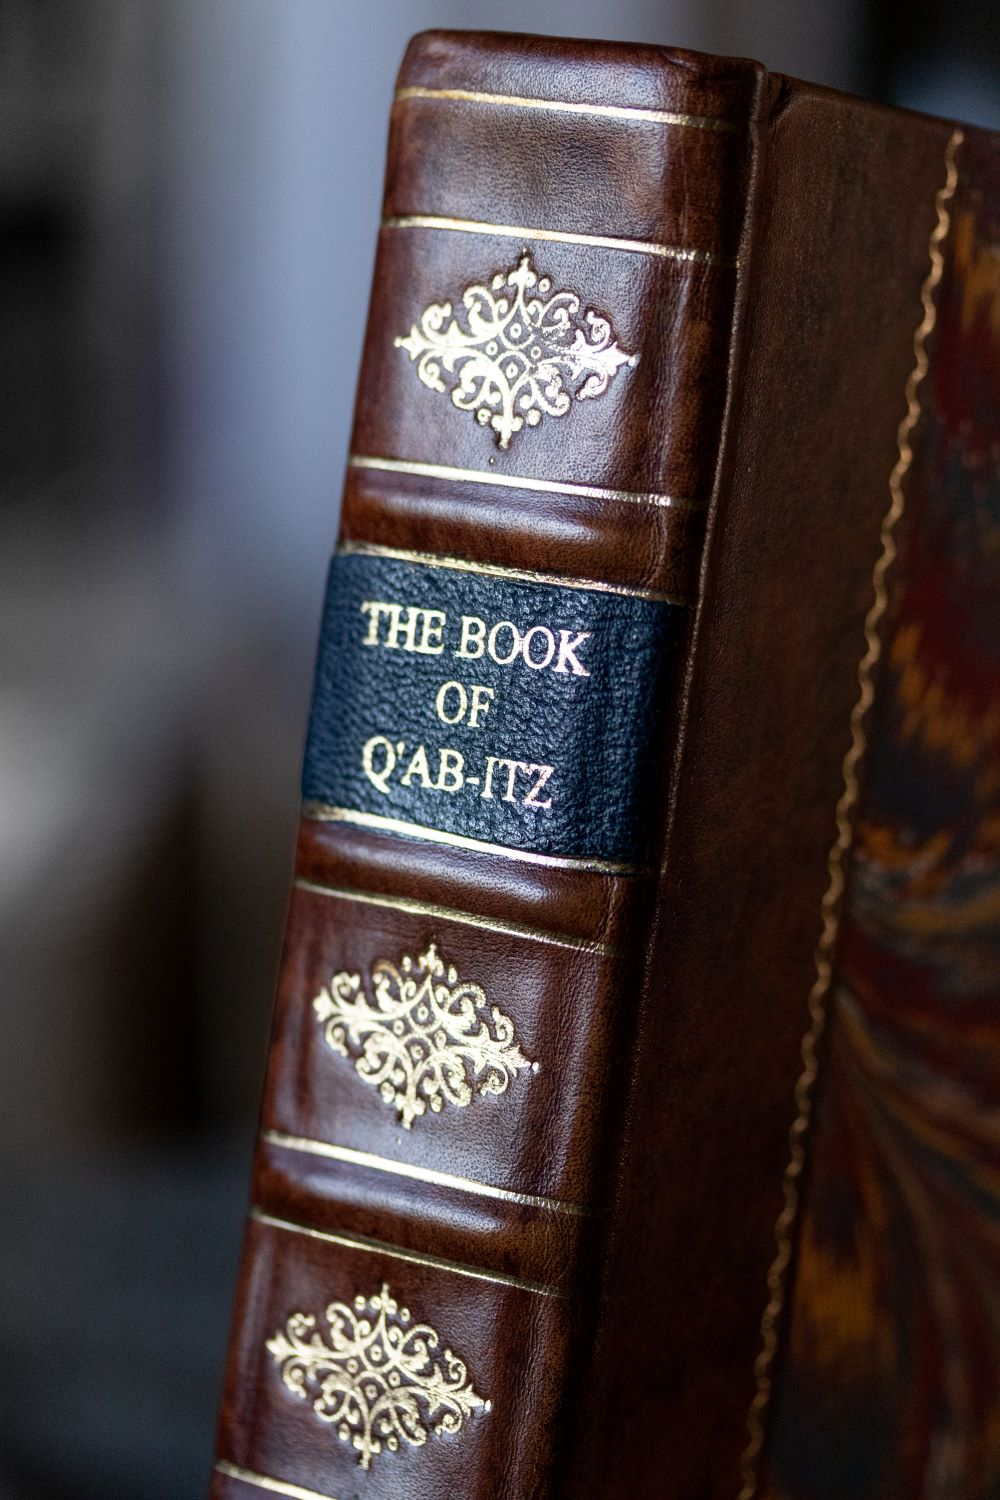 The Book of Q'ab iTz - Telesmatic Edition